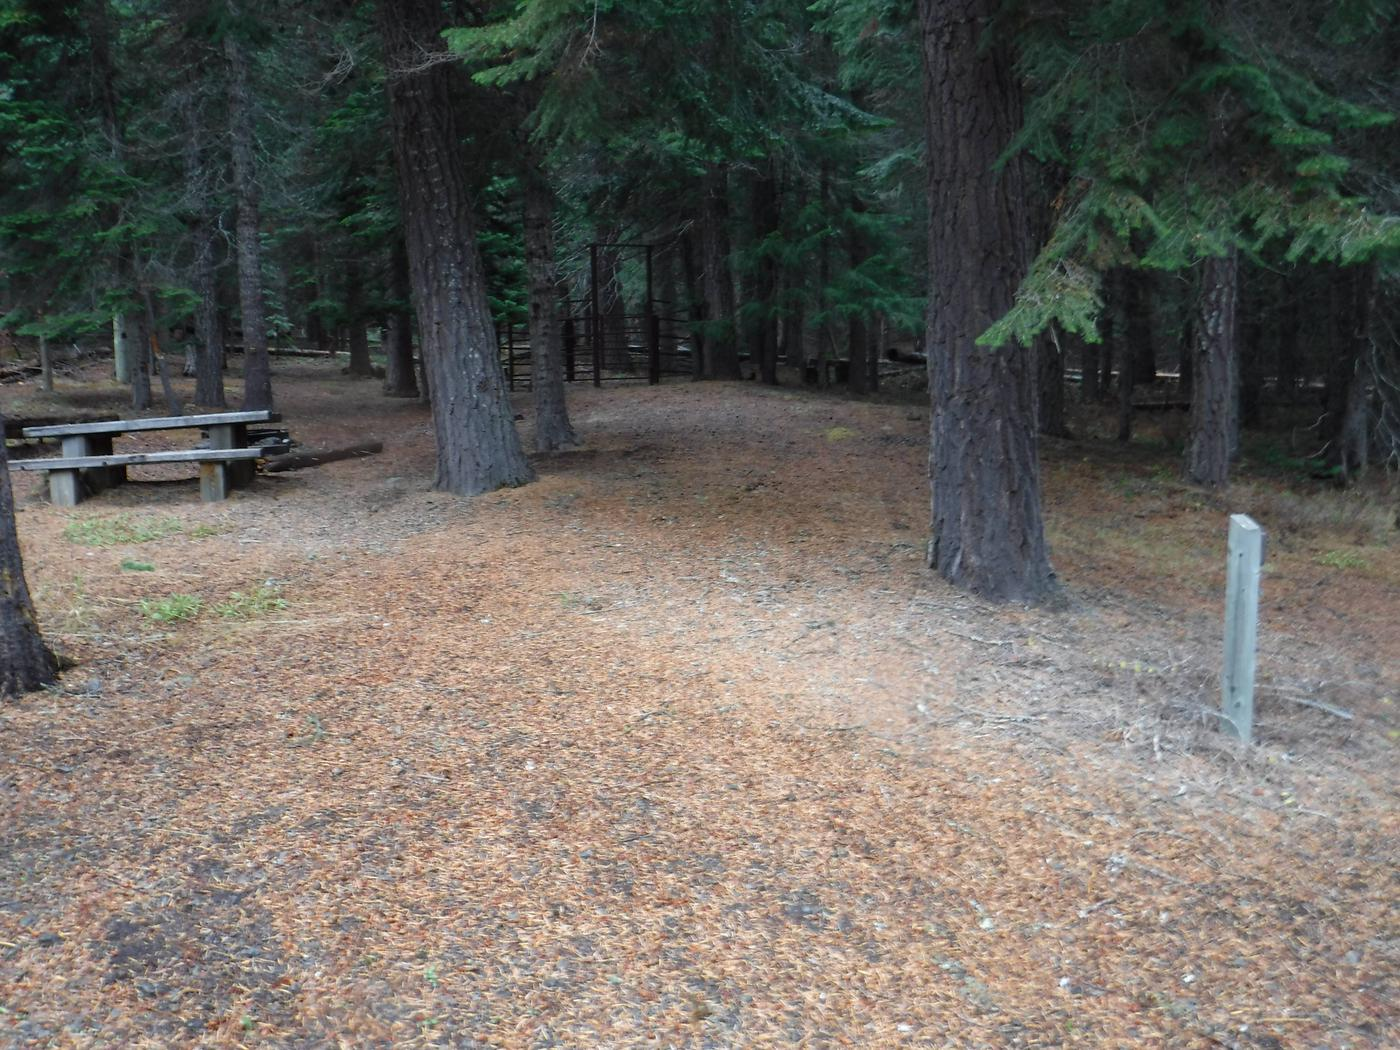 Flat campsite with one picnic table, fire ring and corral.B7